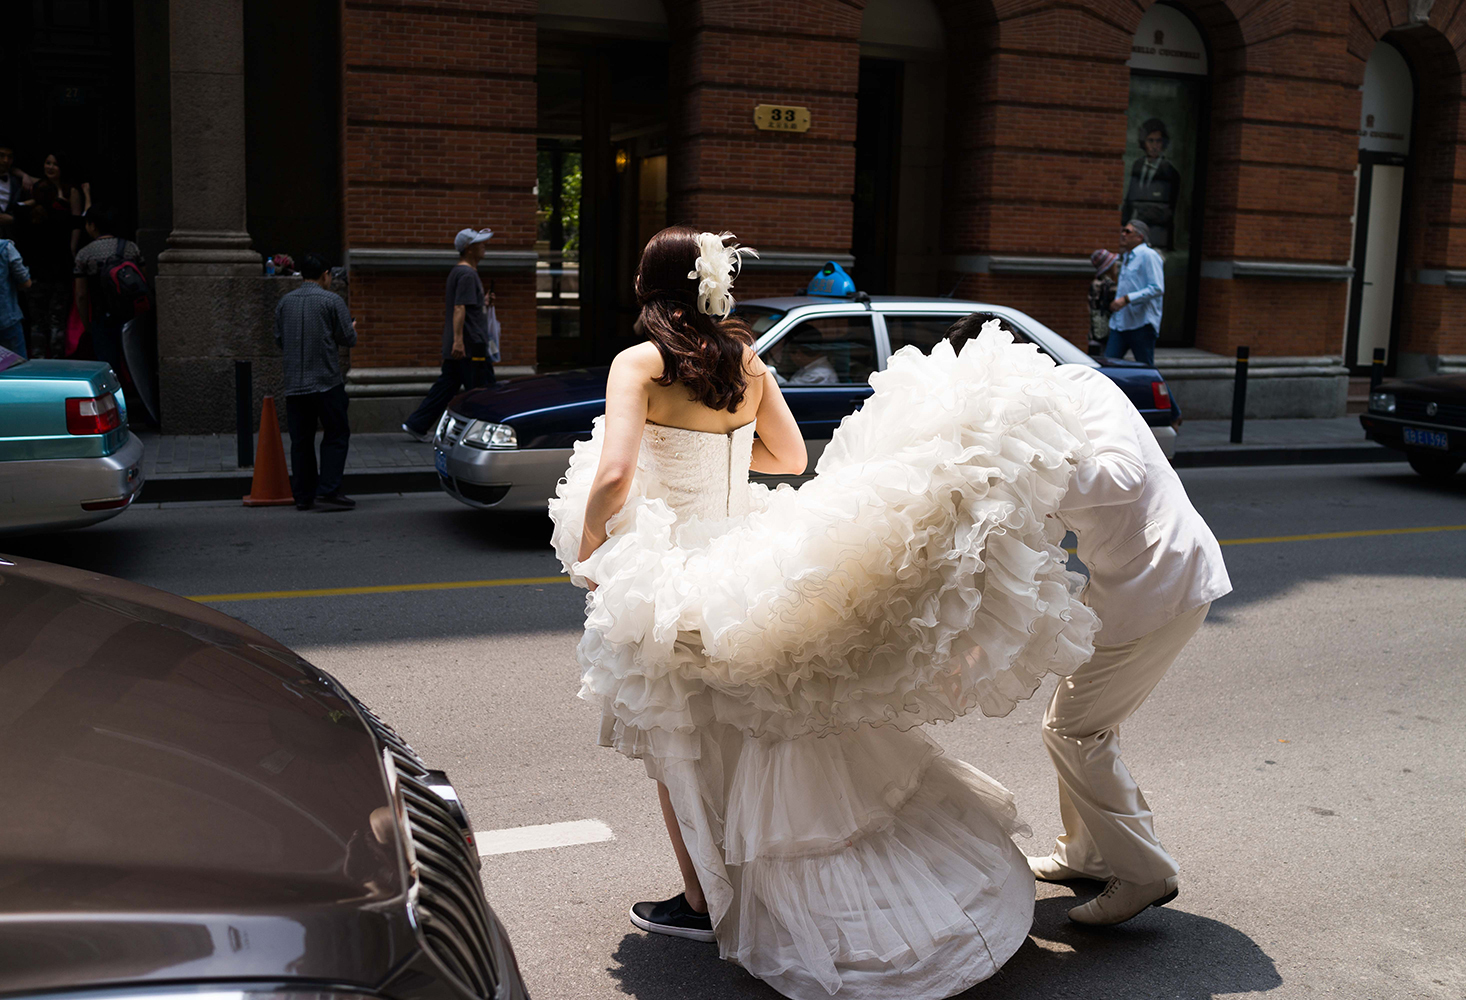 A bride-to-be has her dress adjusted during a photo shoot in Shanghai in May 2015.